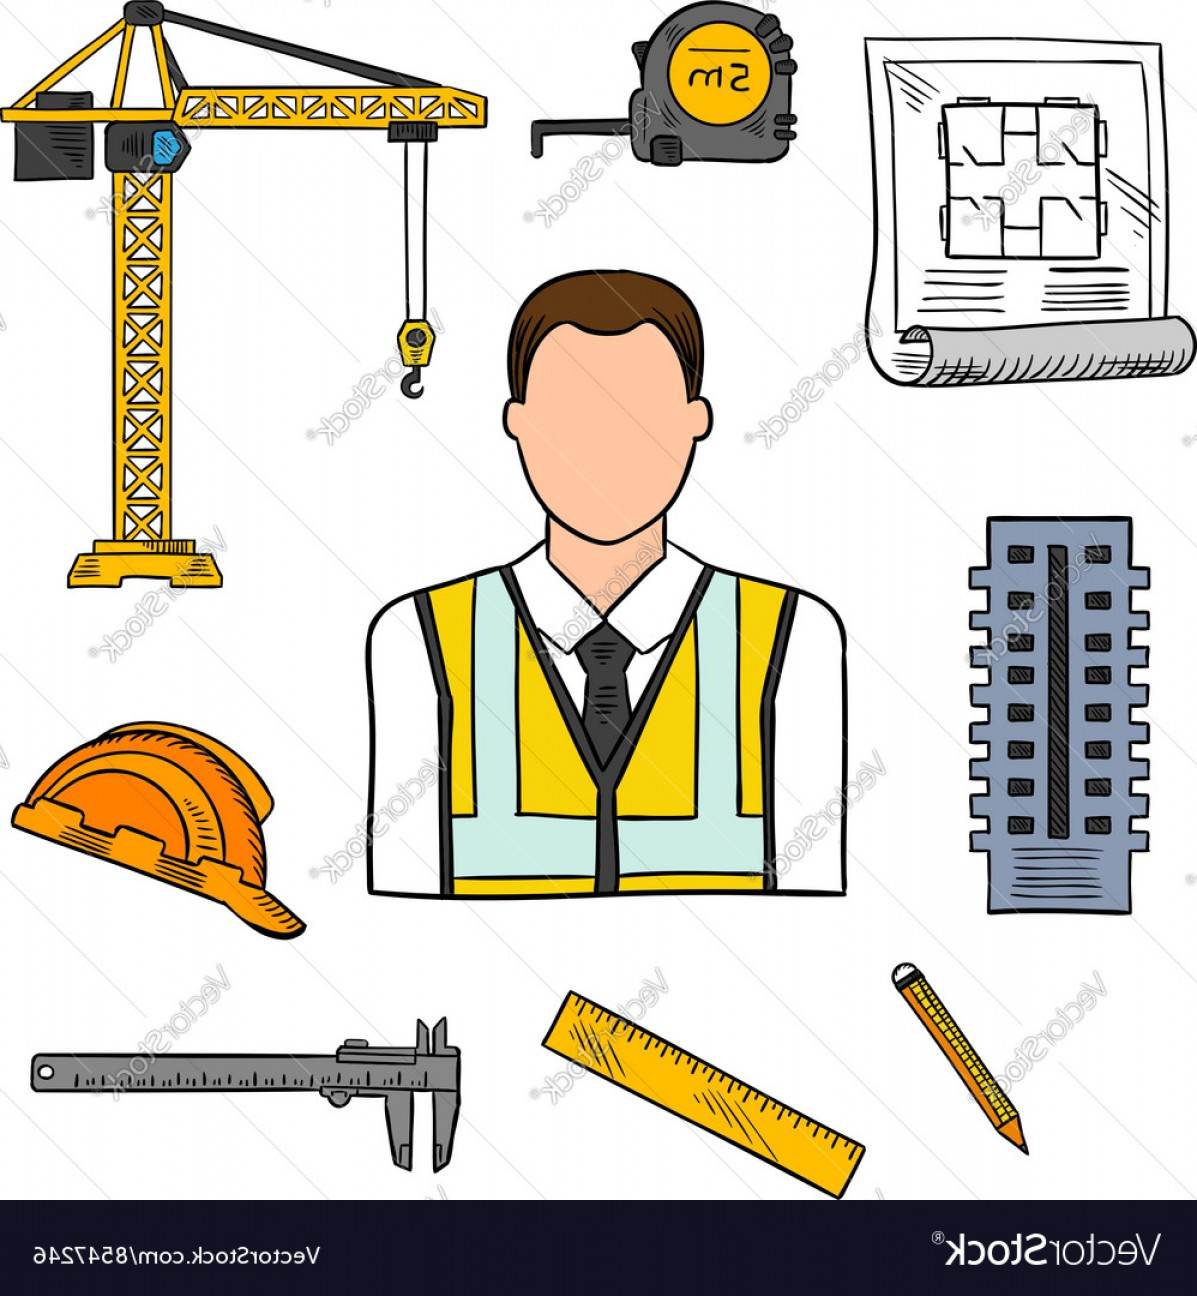 Vector Graphic Of Civil Engineering: Engineer Sketch Icon For Civil Engineering Design Vector